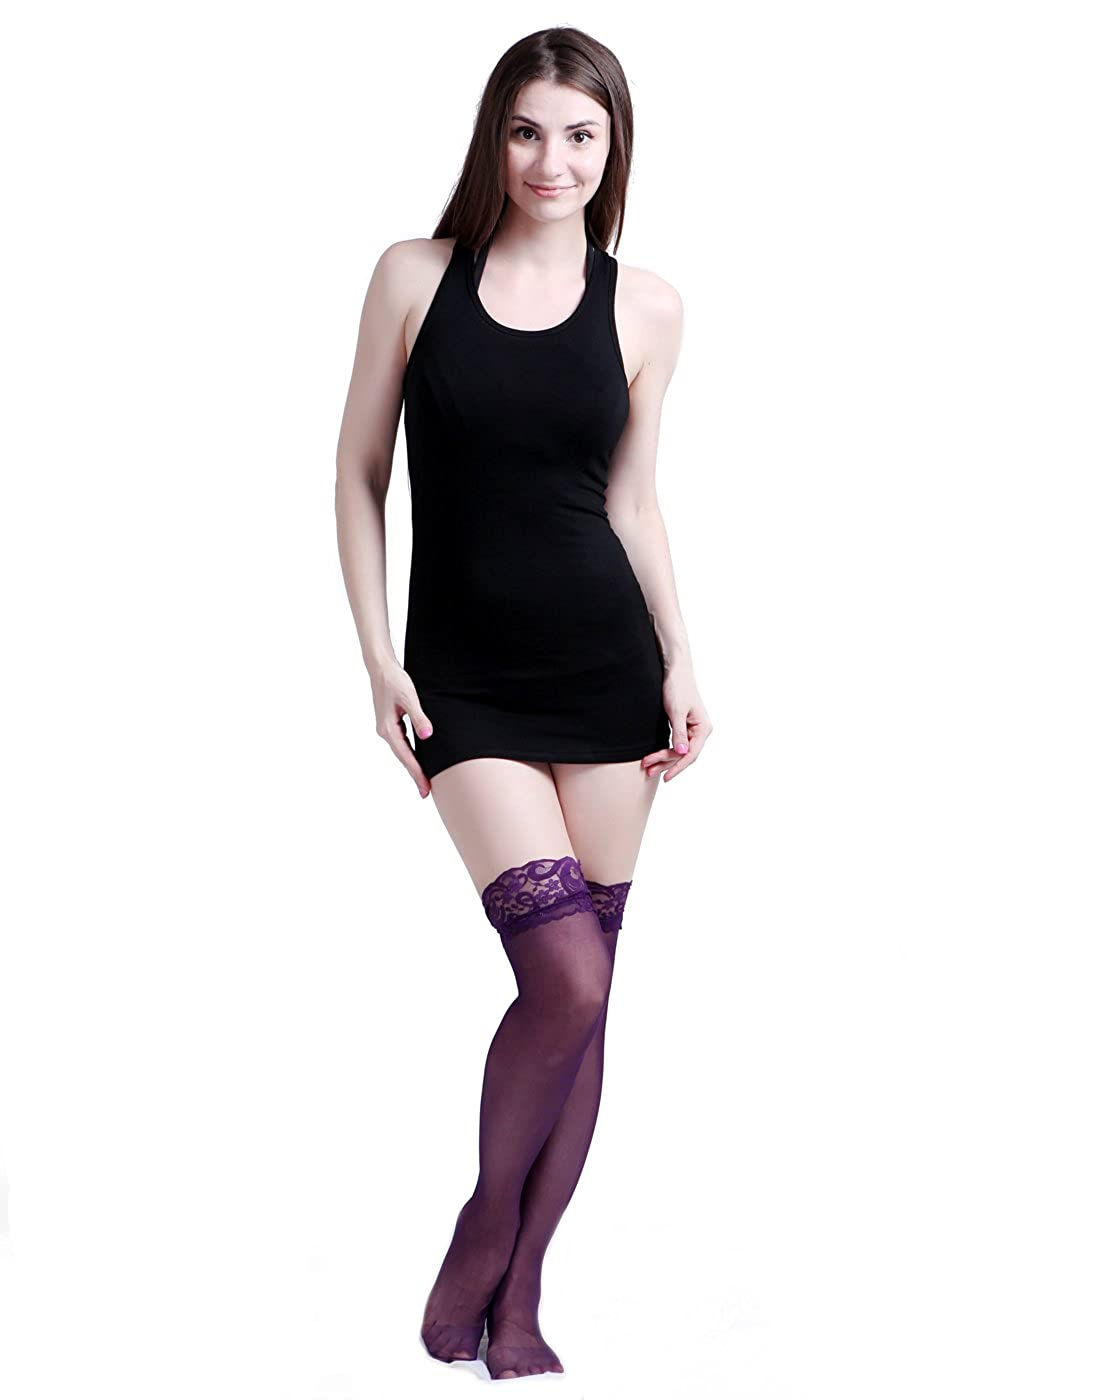 f7b6248af HDE Women s Sheer Thigh High Garter Stockings with Scallop Lace Top (Purple)  at Amazon Women s Clothing store